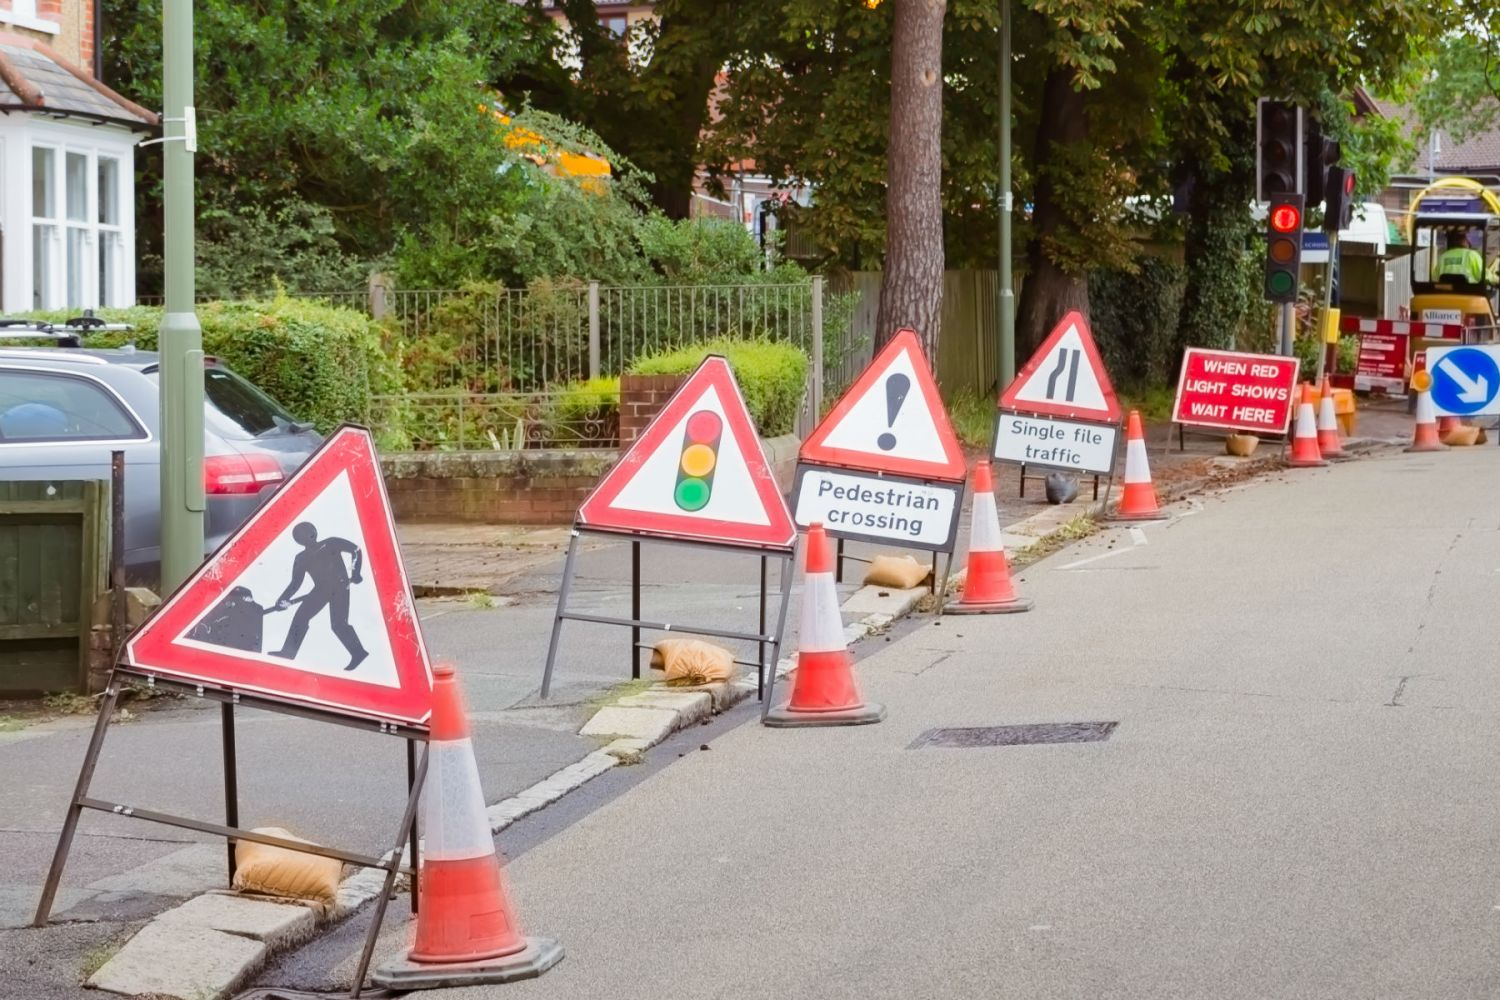 The government is spending £46m repairing potholes